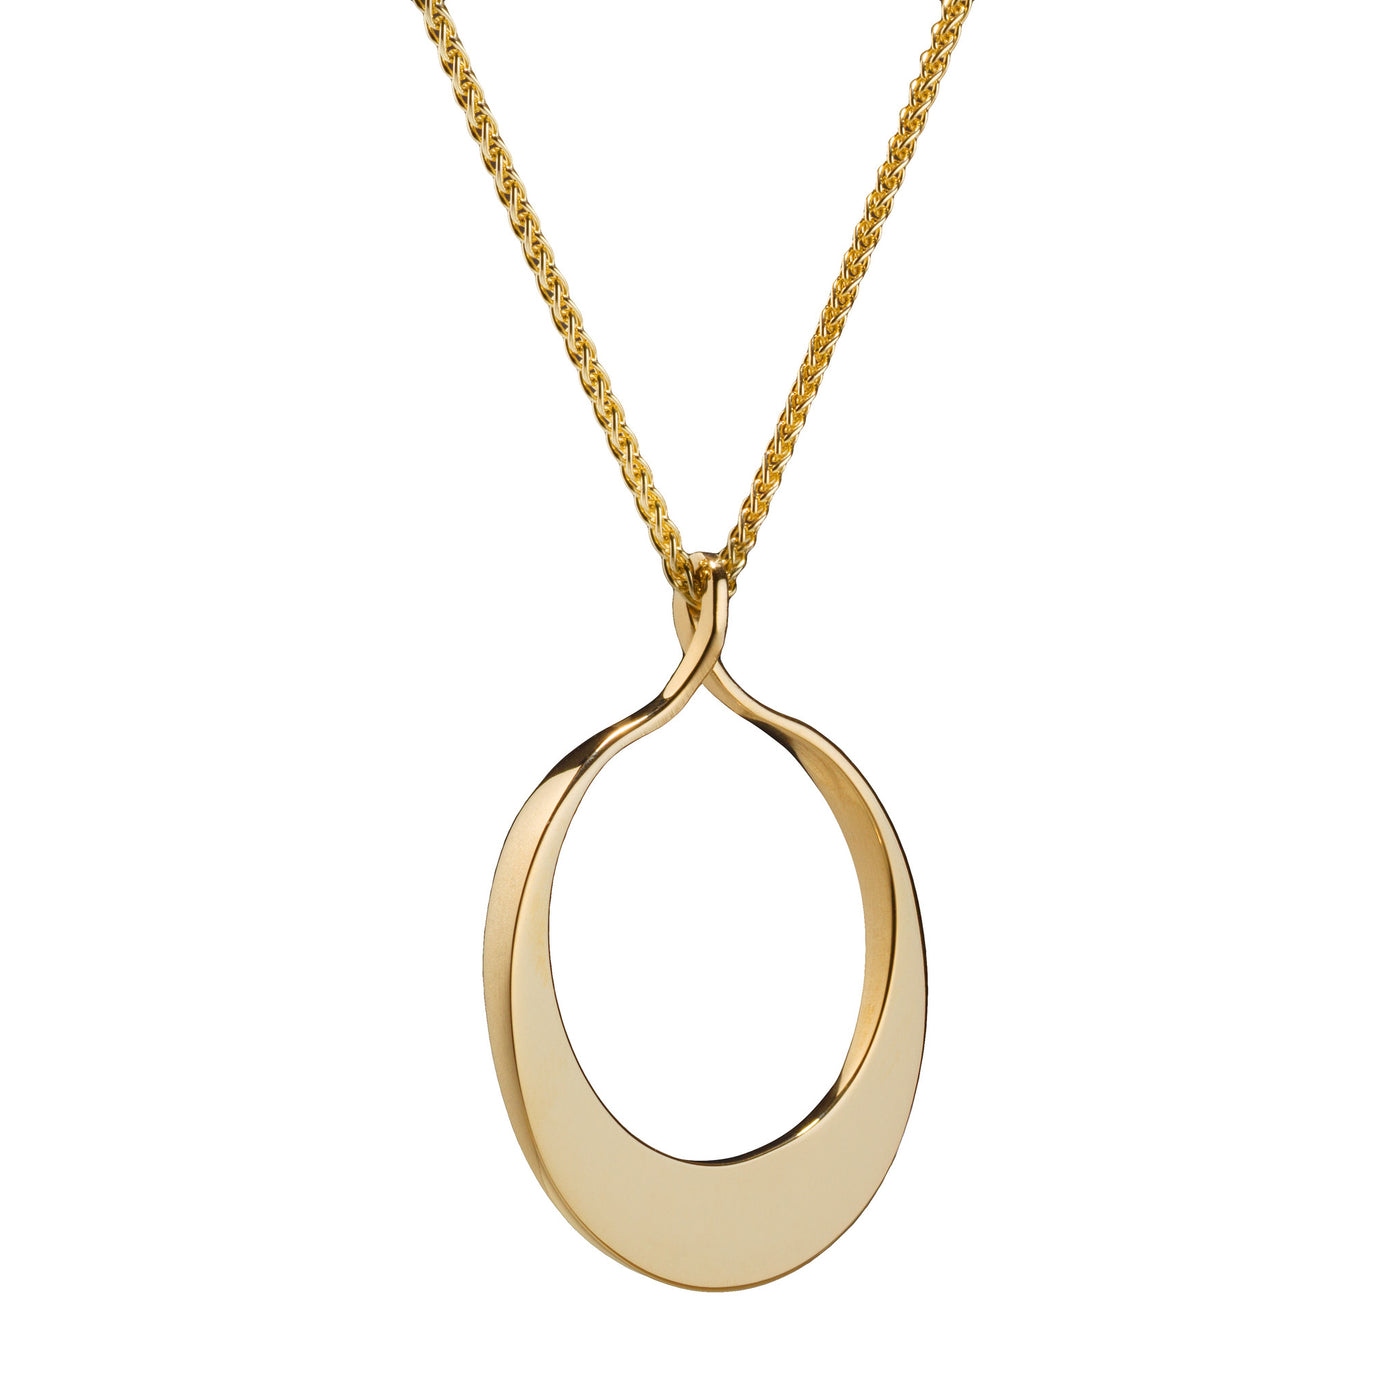 Circle of Dreams Medium Gold Pendant. Material: 9 ct. yellow gold, 18'' spiga chain. Measurements: 32mm across, 40 mm in length. Design Year: 2012